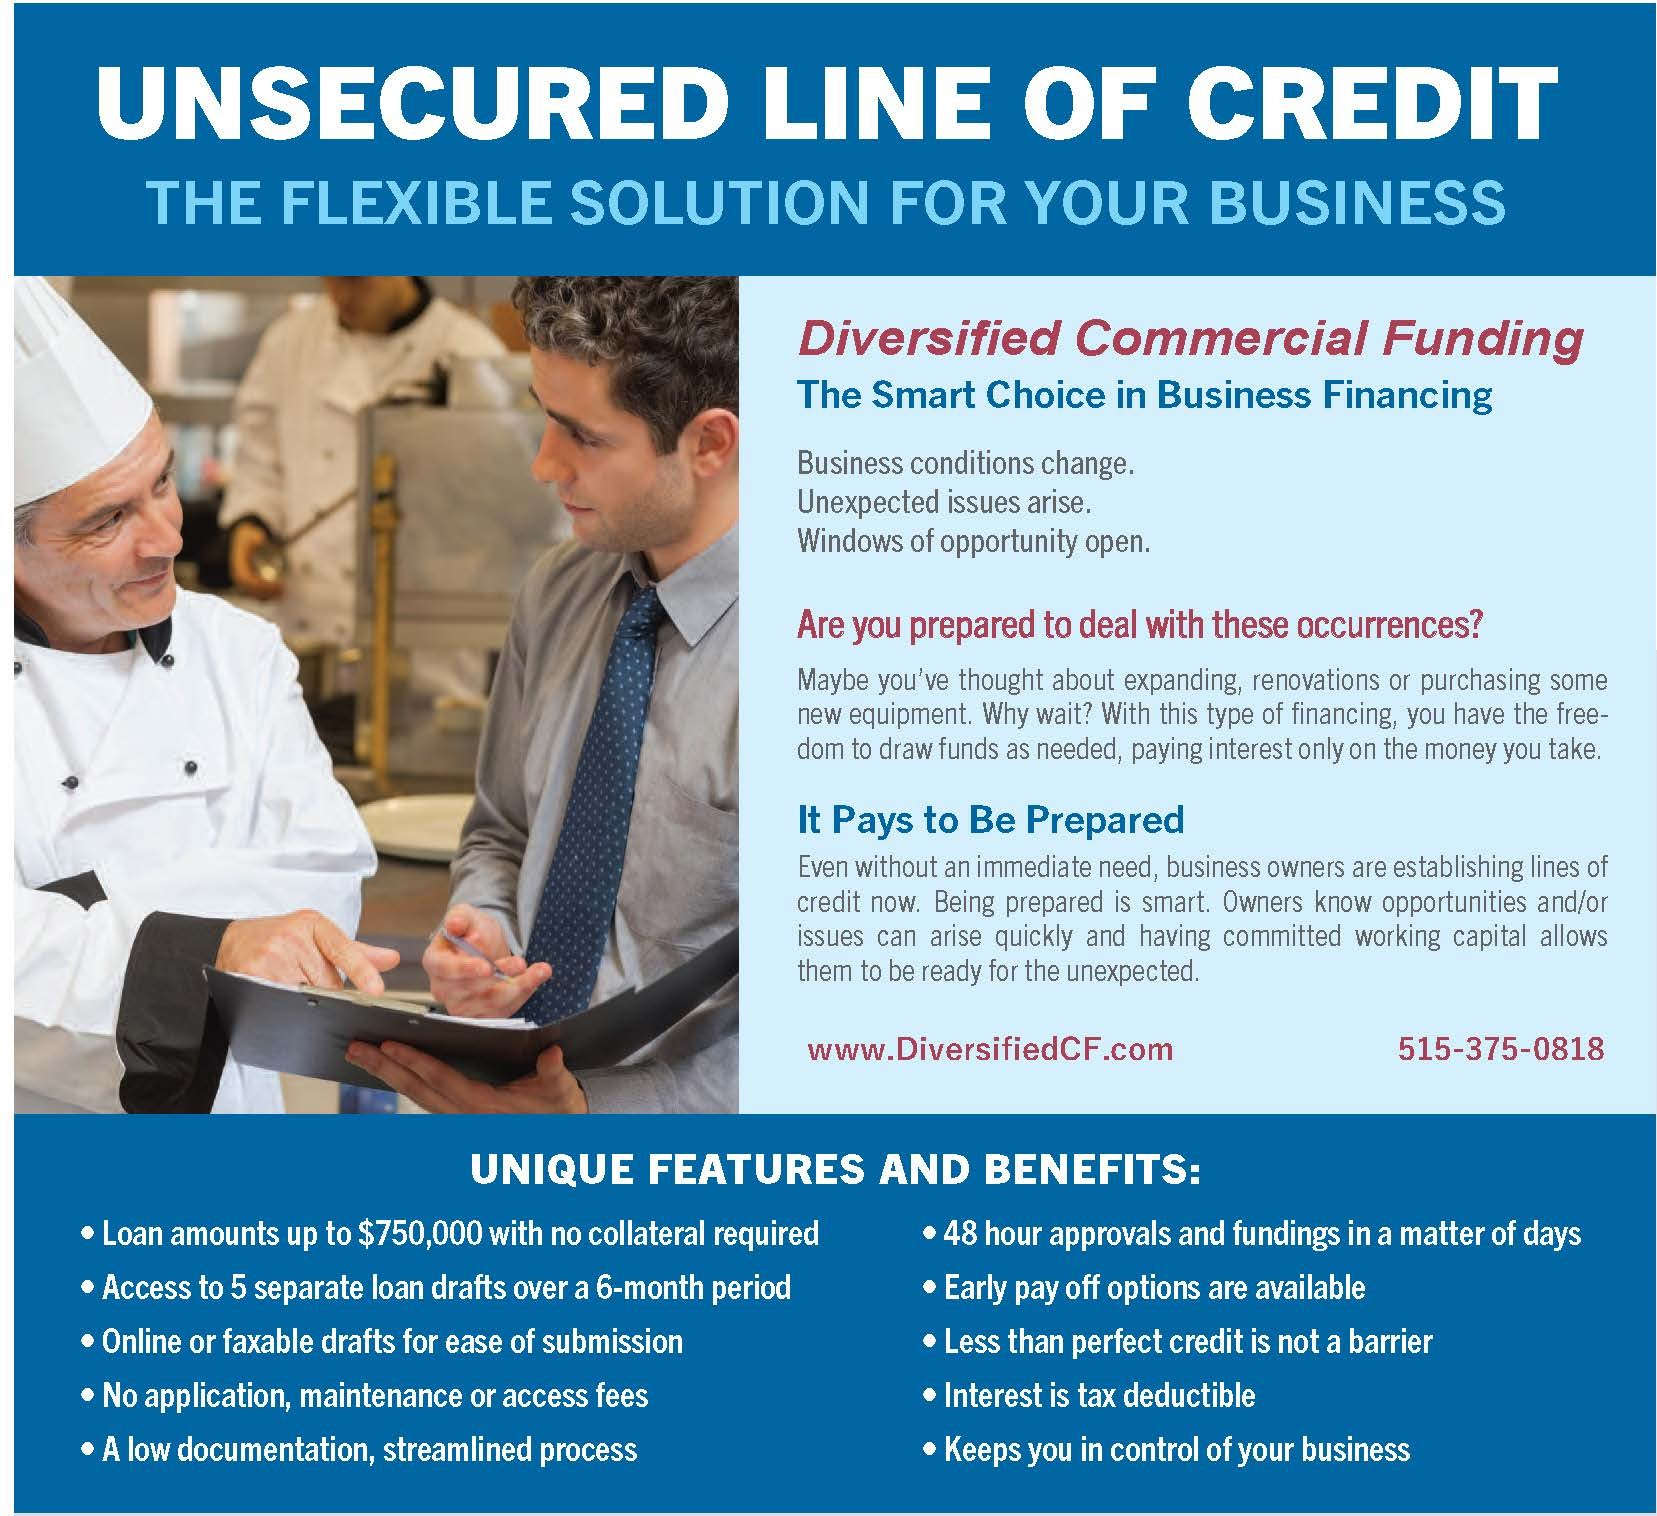 Lines of Credit for Businesses